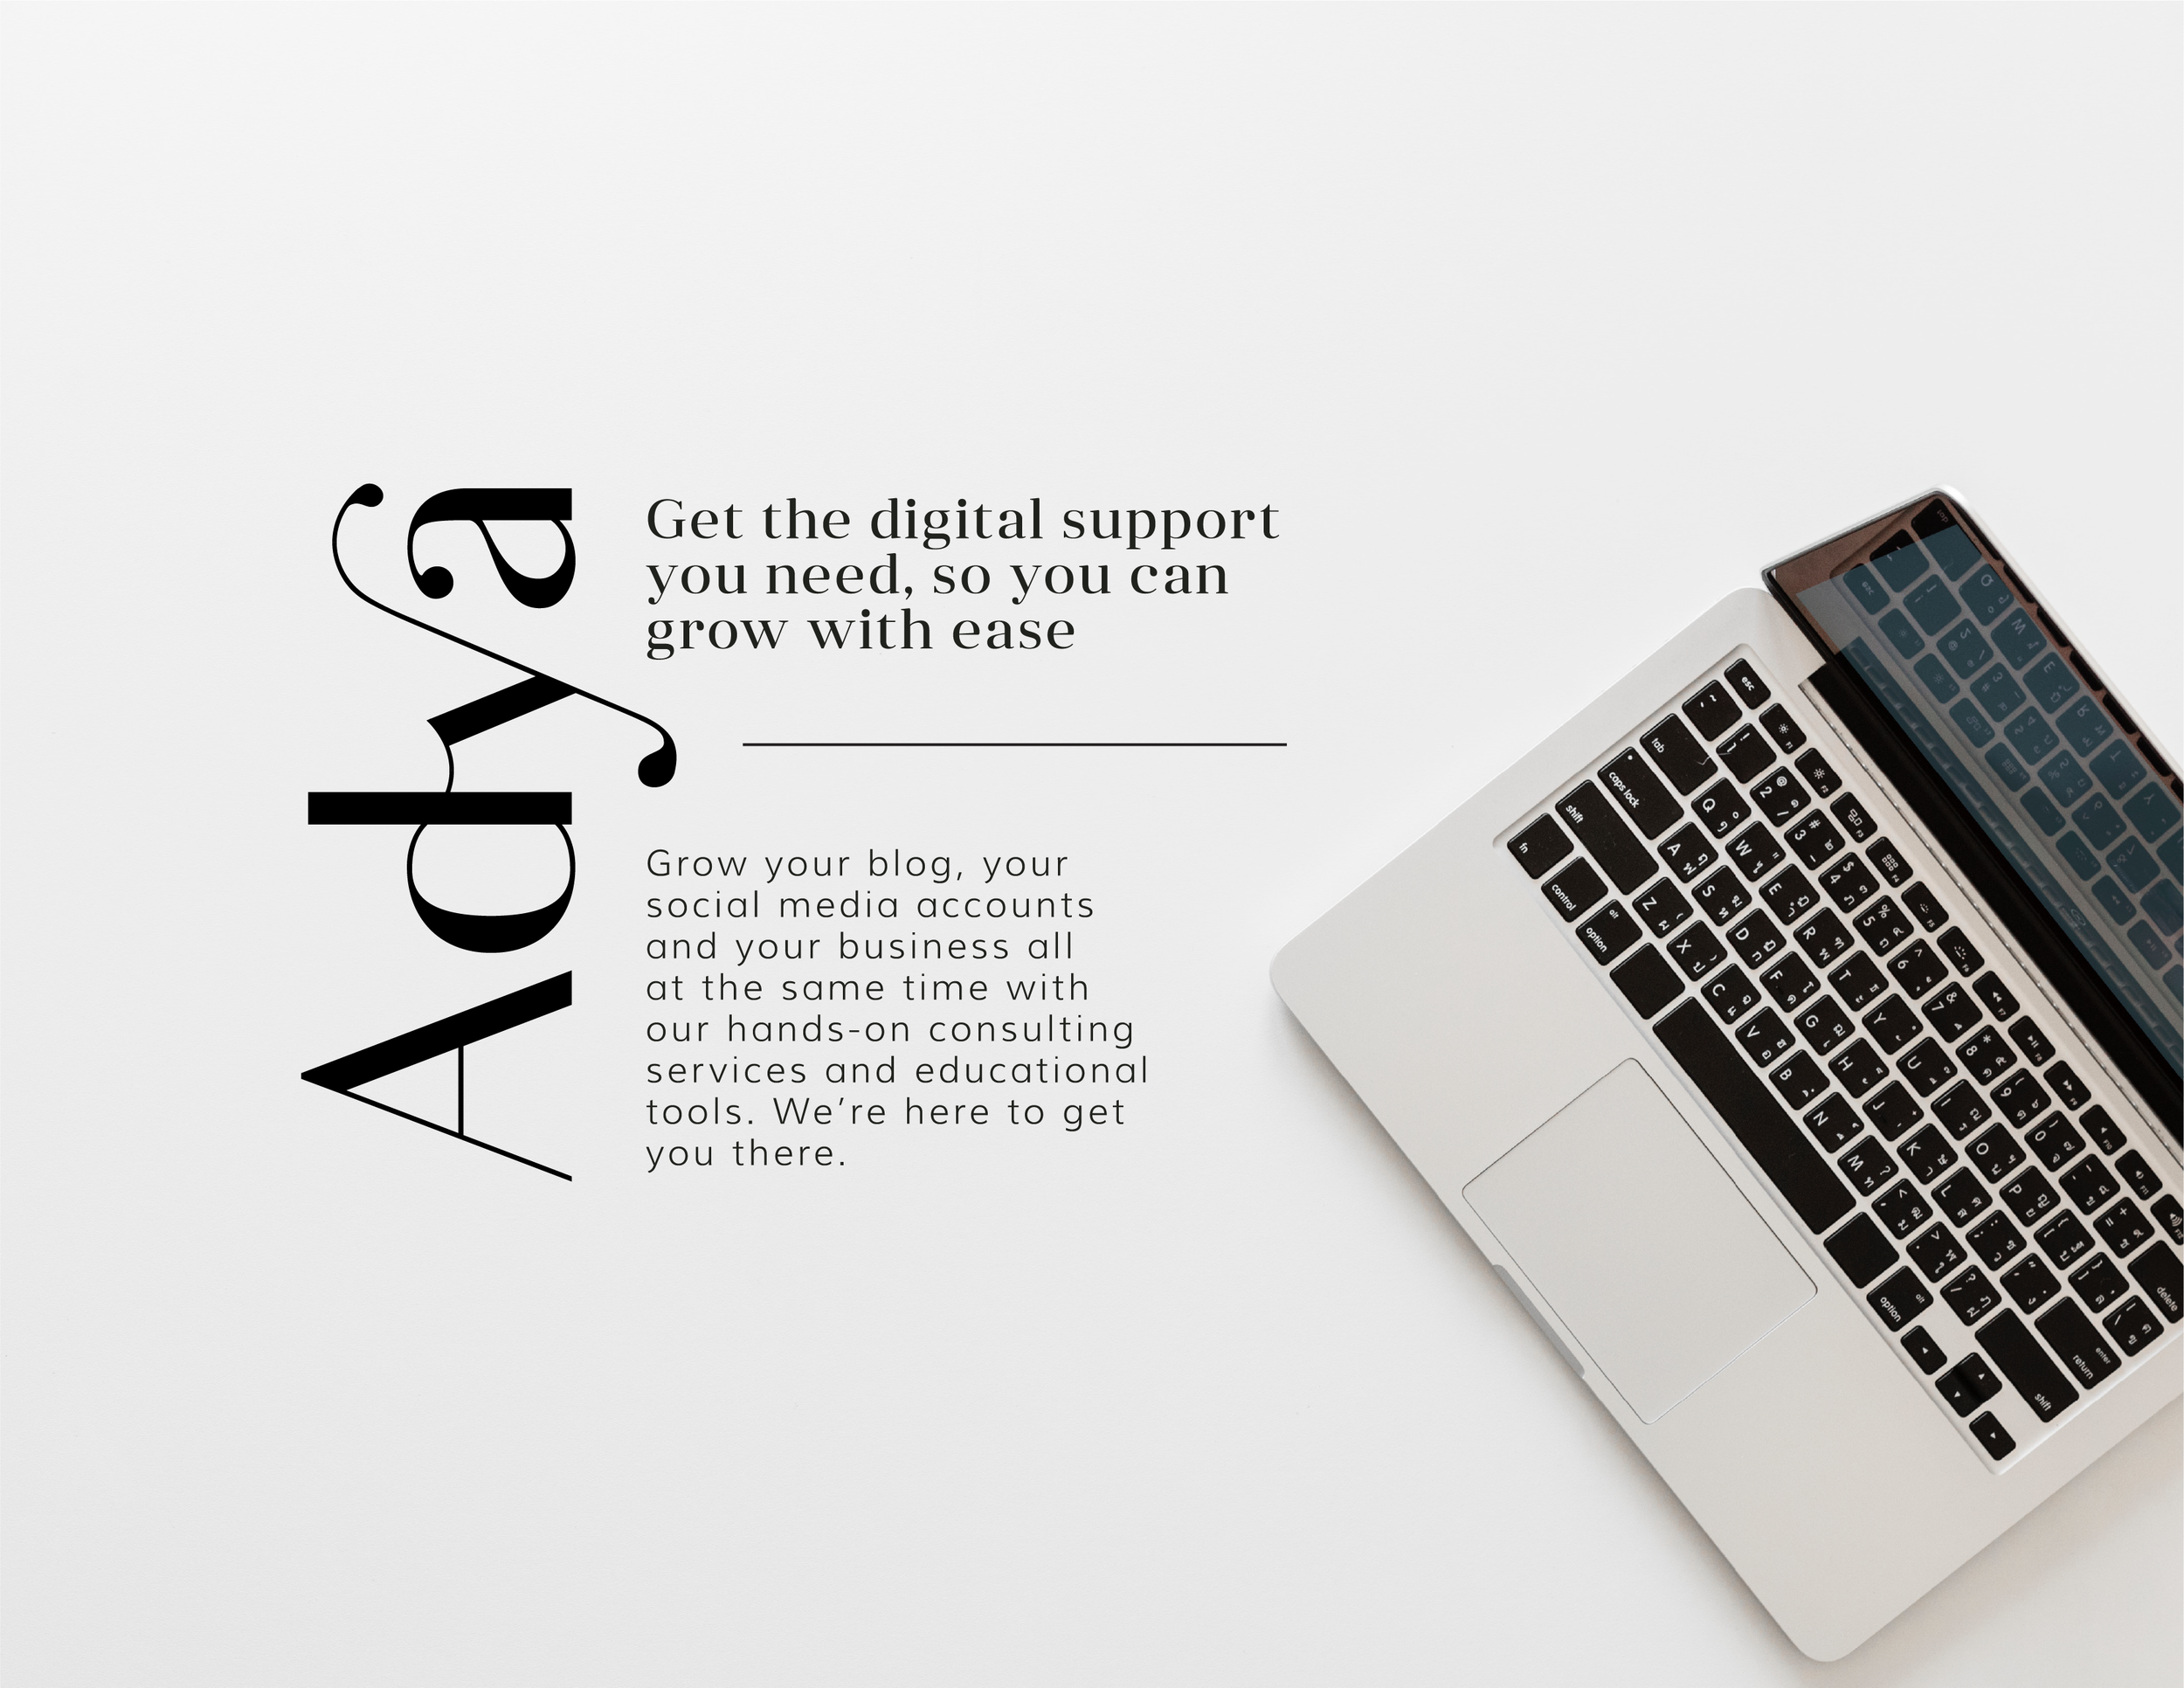 Adya logo and text on a photo of a laptop